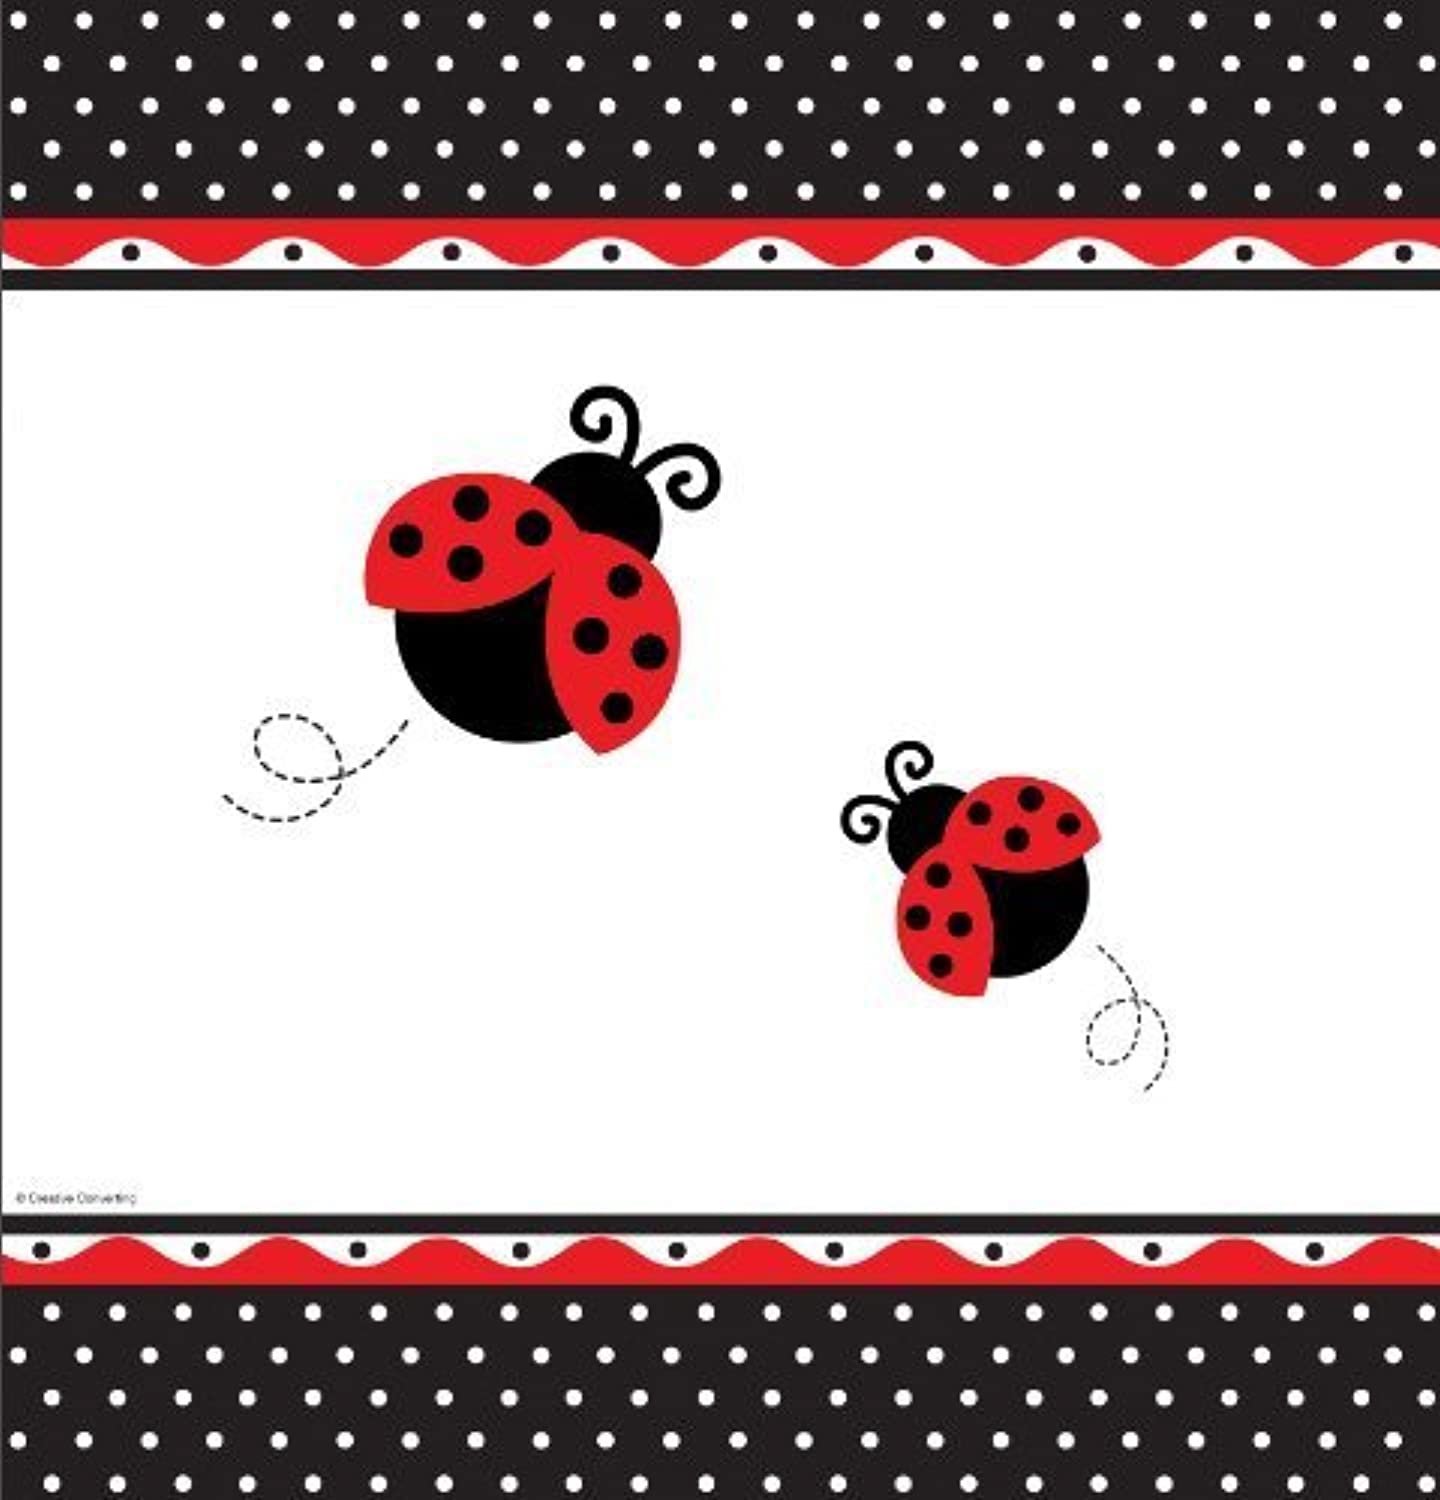 Fancy Ladybug Polka Dot Party Plastic Tablecover by Ladybug Party